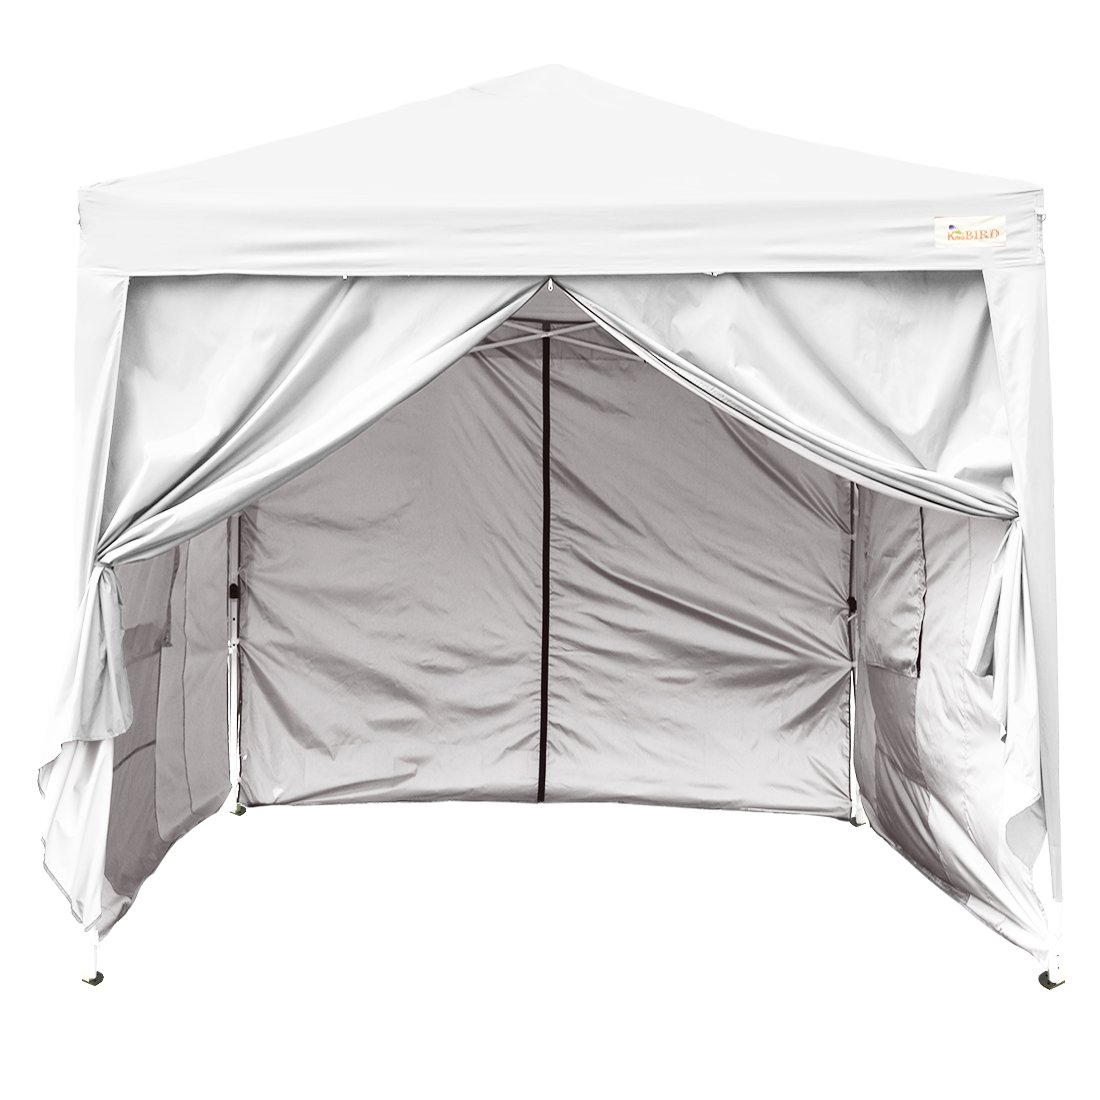 Kingbird 10 x 10 ft Easy Pop up Canopy Waterproof Party Tent 4 Removable Walls Mesh Windows with Carry Bag-7 Colors (white)